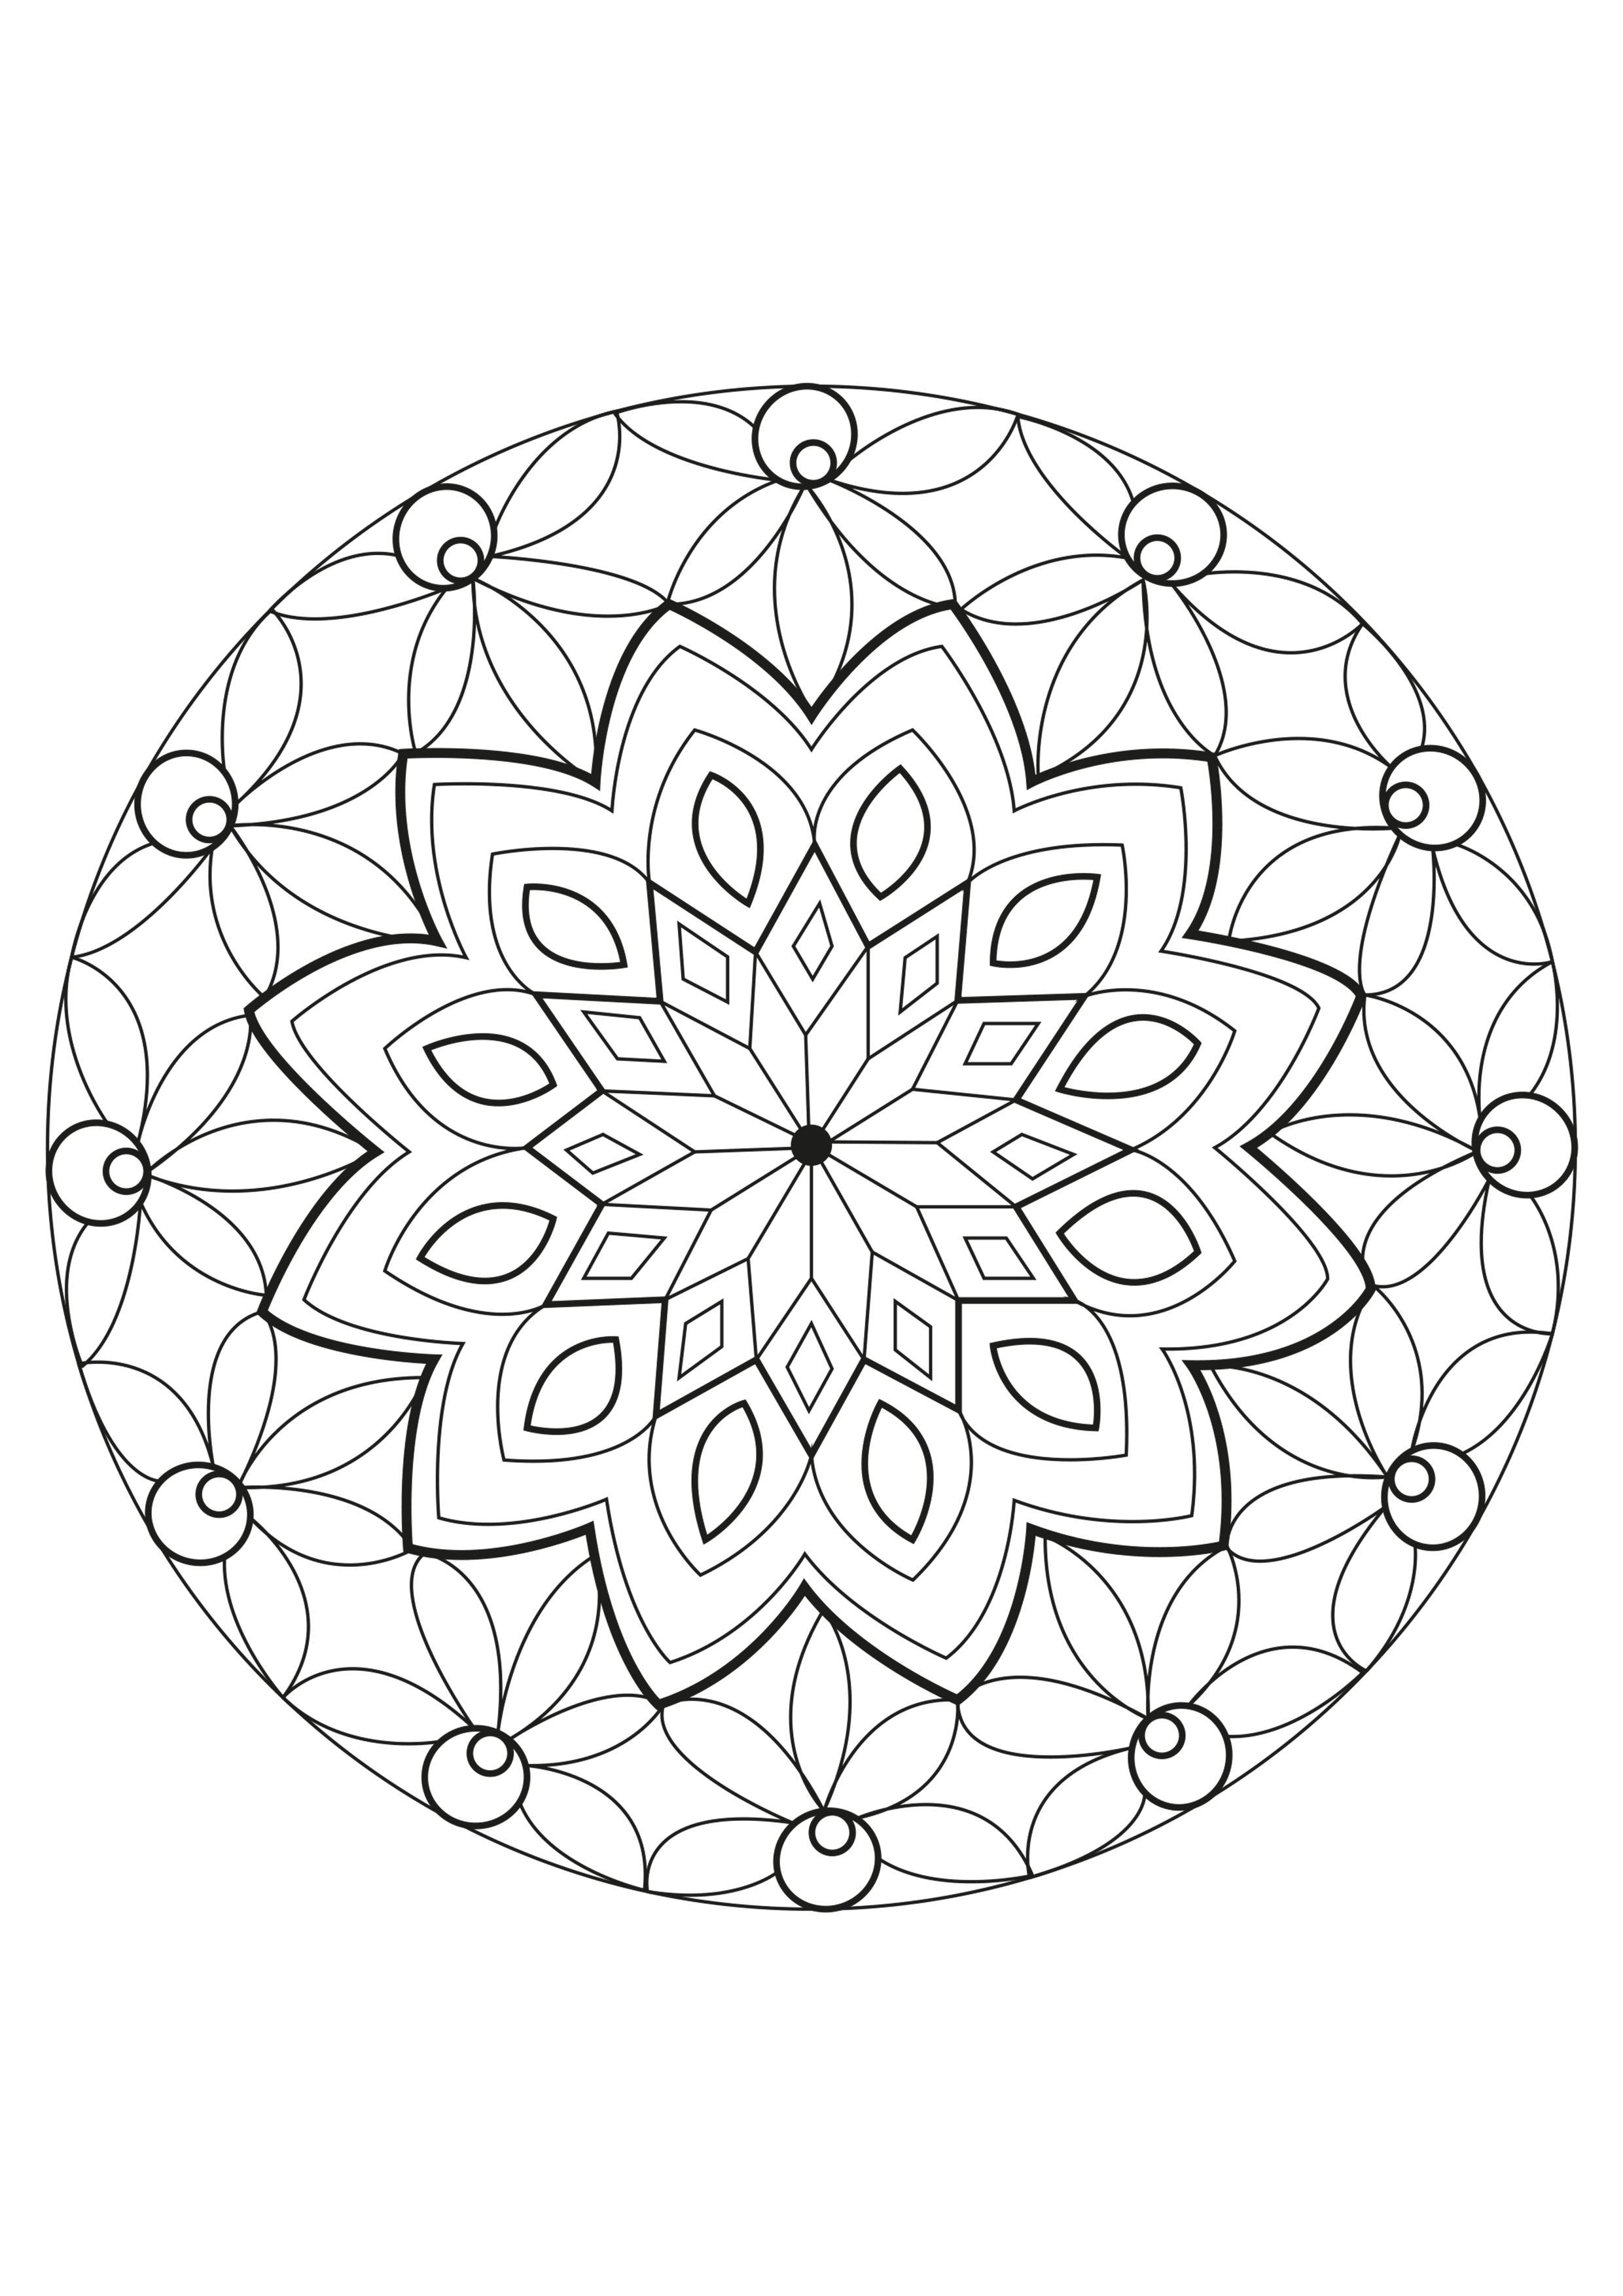 Mandala celine Mandalas Coloring pages for adults JustColor